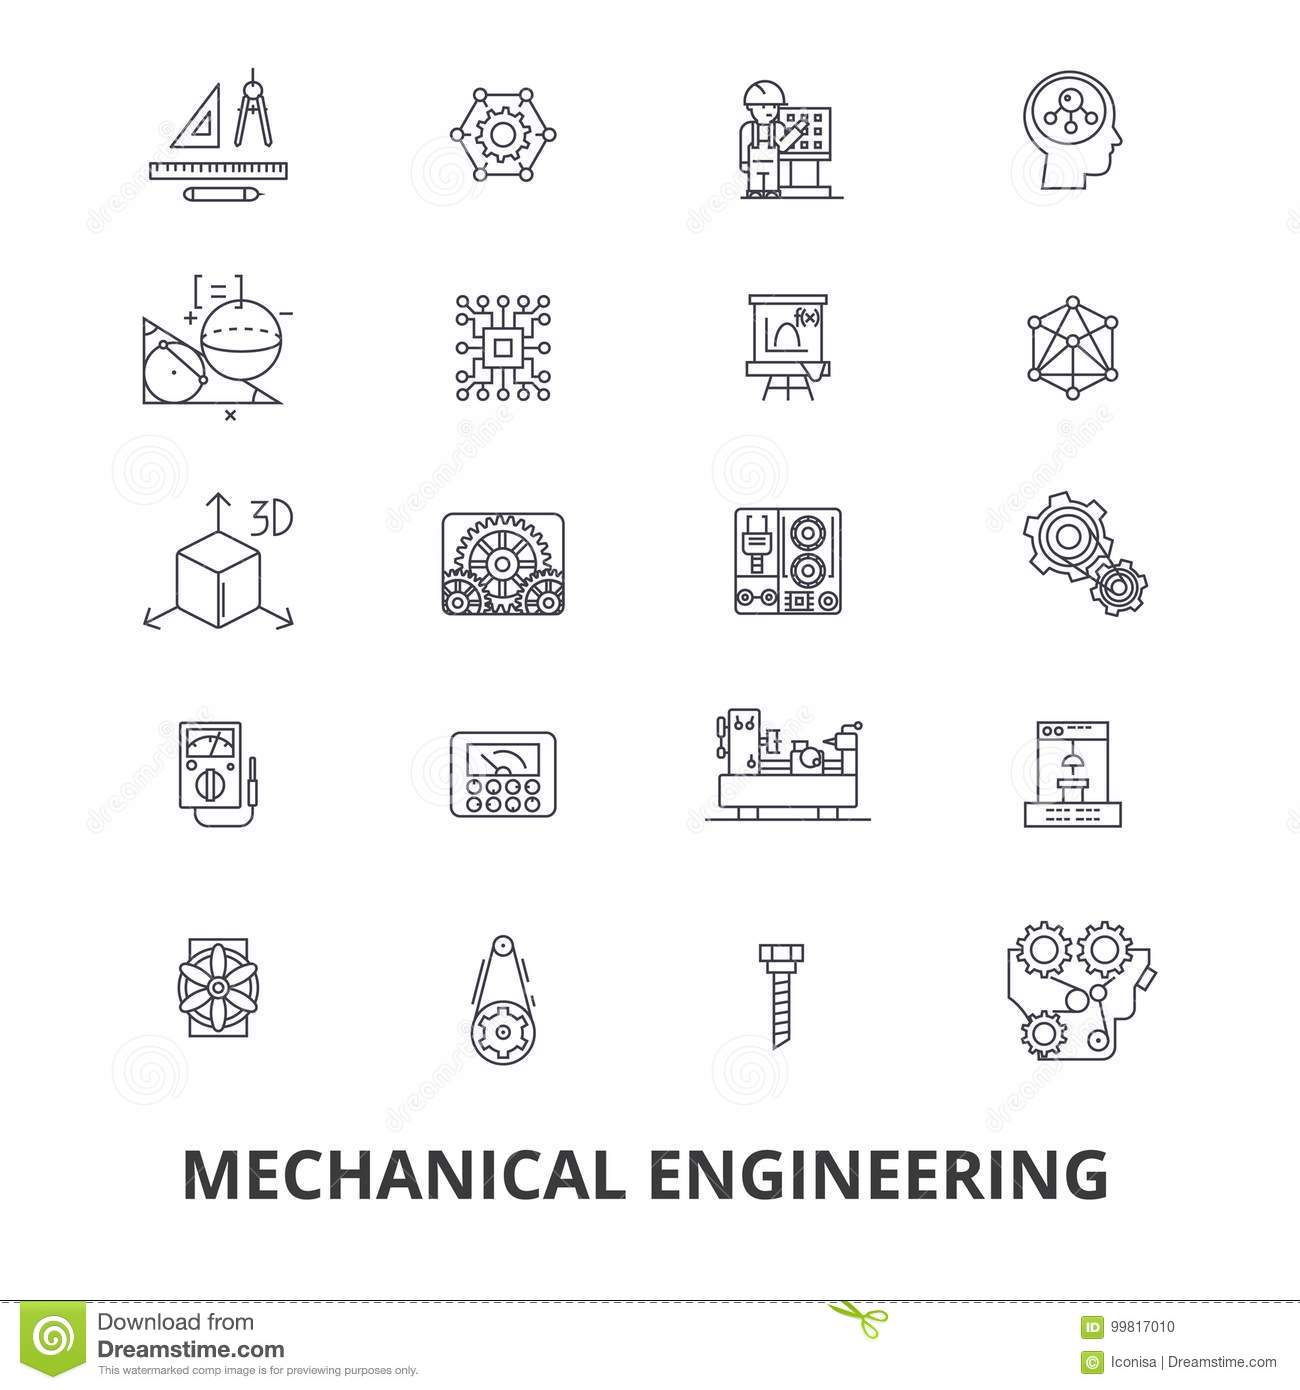 Mechanical Engineering, Mechanic, Electrical, Gears, Electronic, Car  Mechanic Line Icons. Editable Strokes. Flat Design Vector Illustration  Symbol Concept.